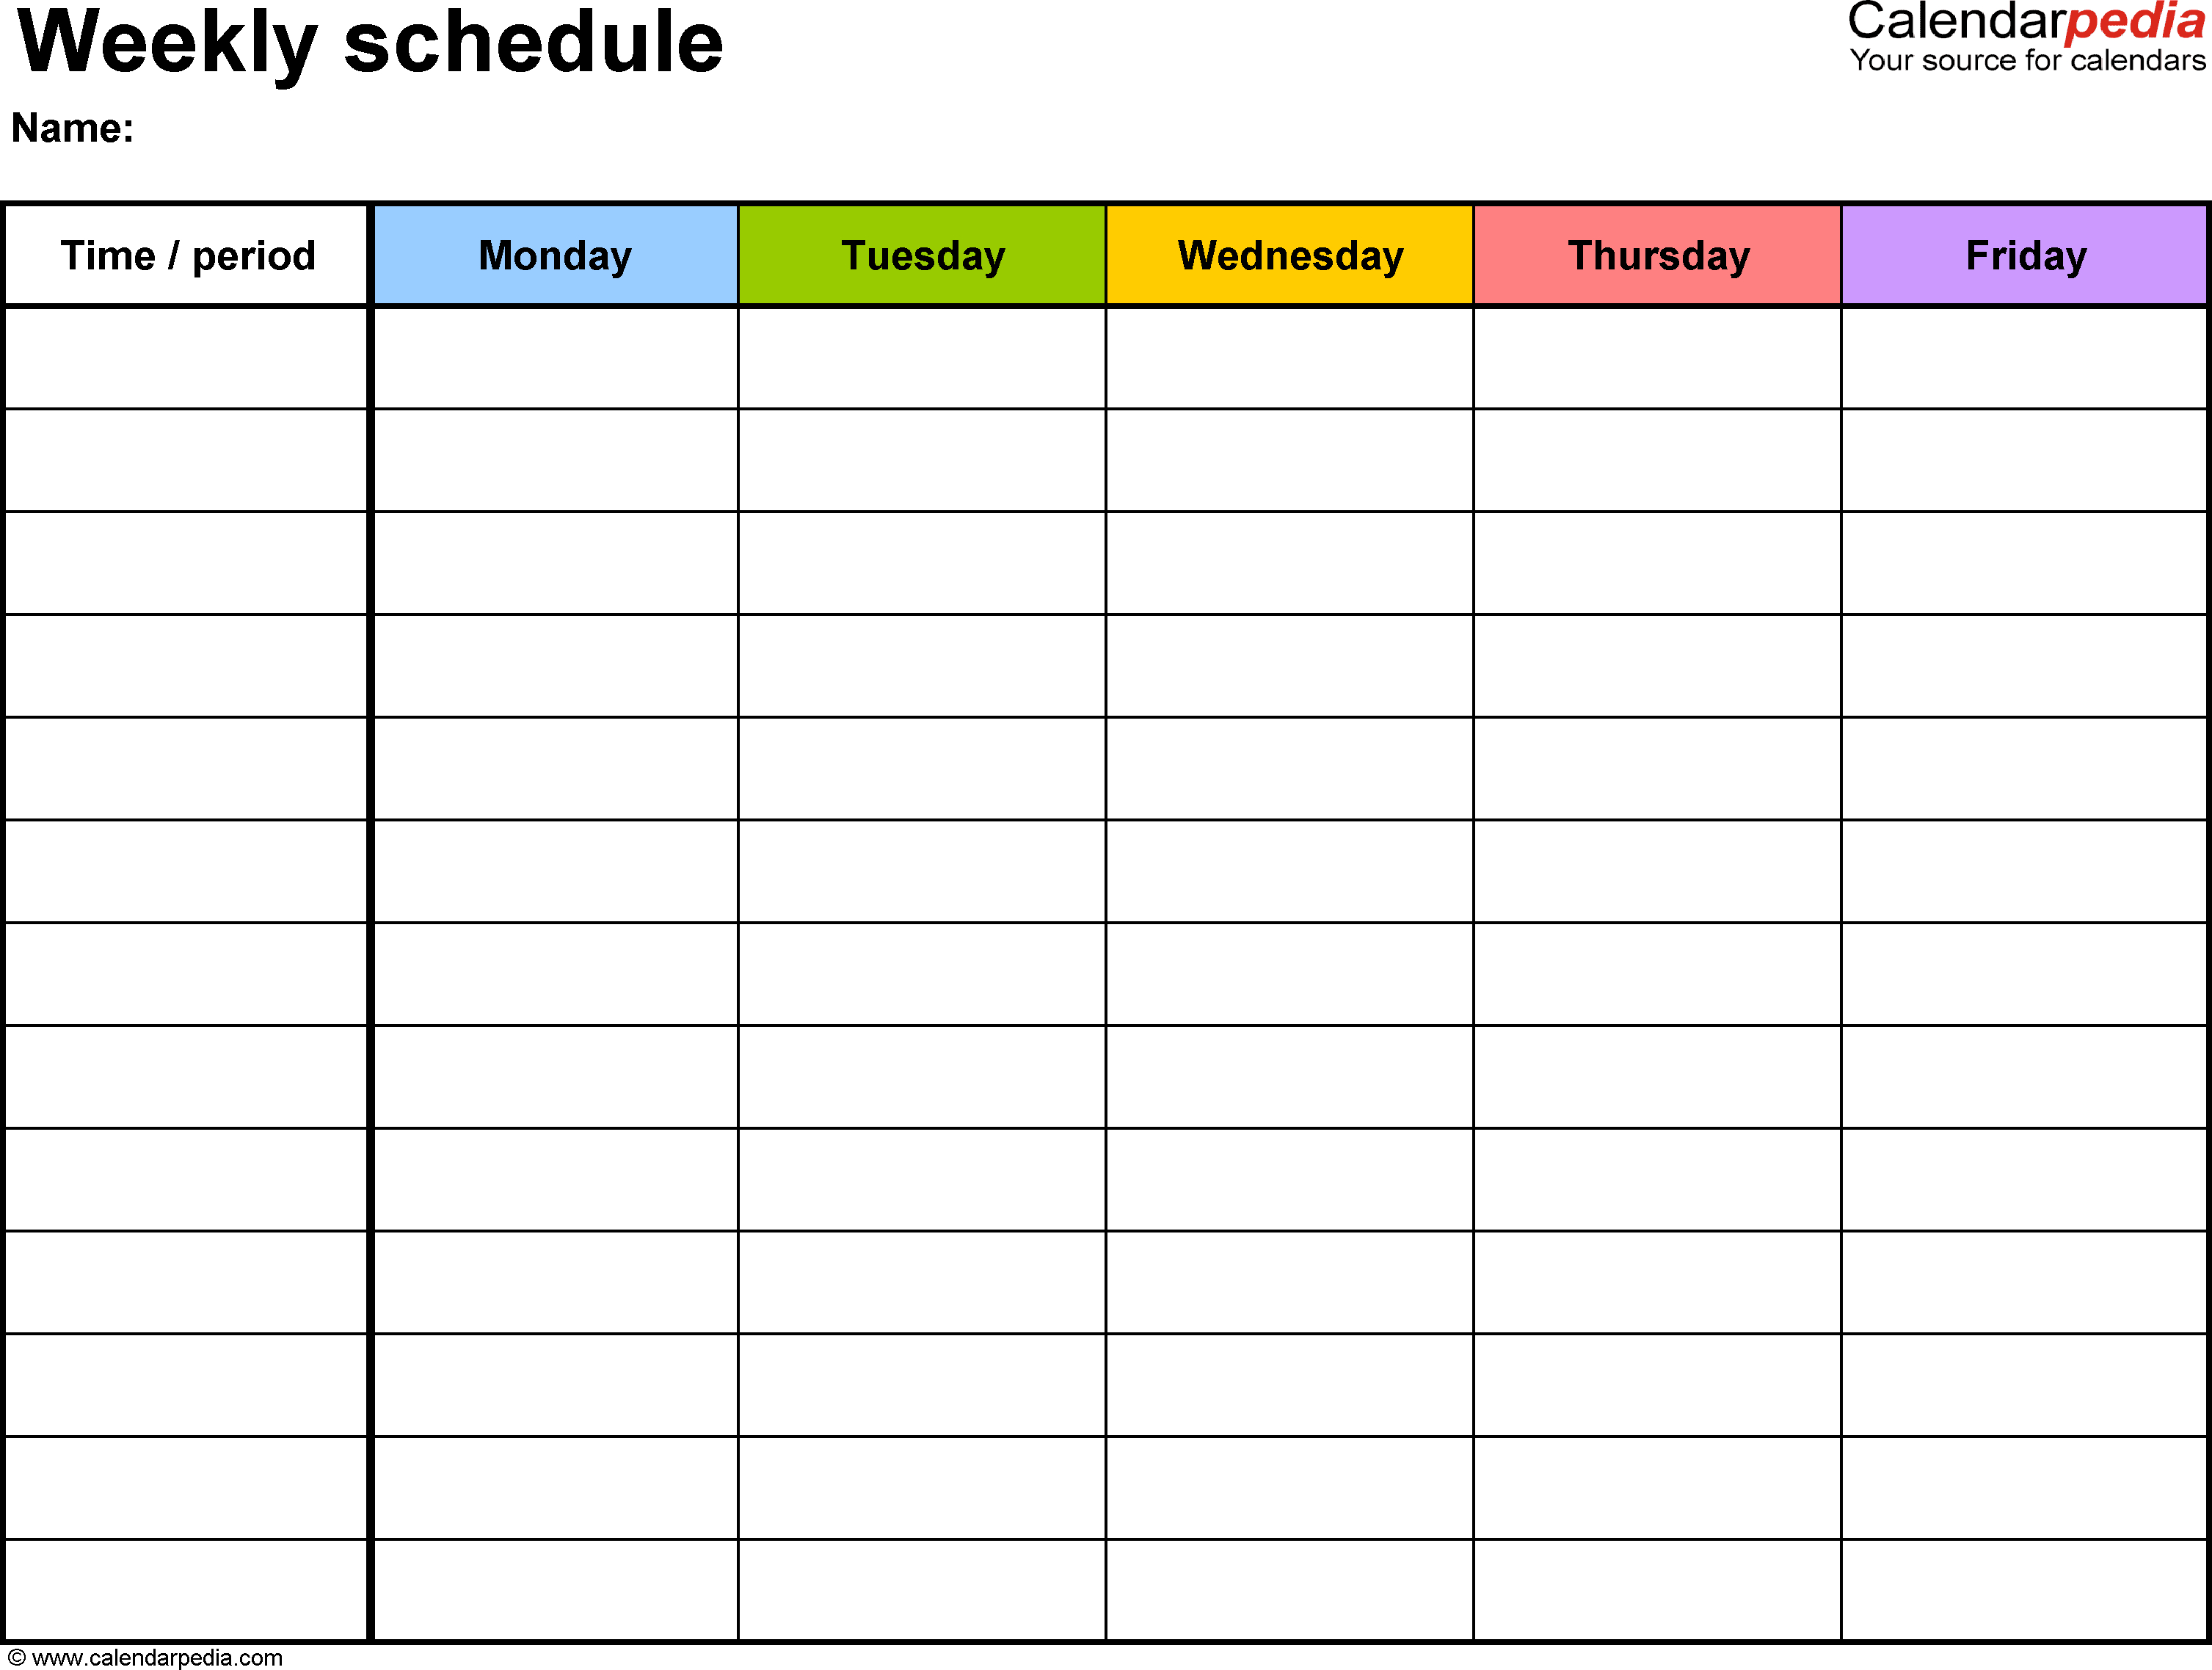 Free Weekly Schedule Templates For Word - 18 Templates - Free Printable Blank Weekly Schedule